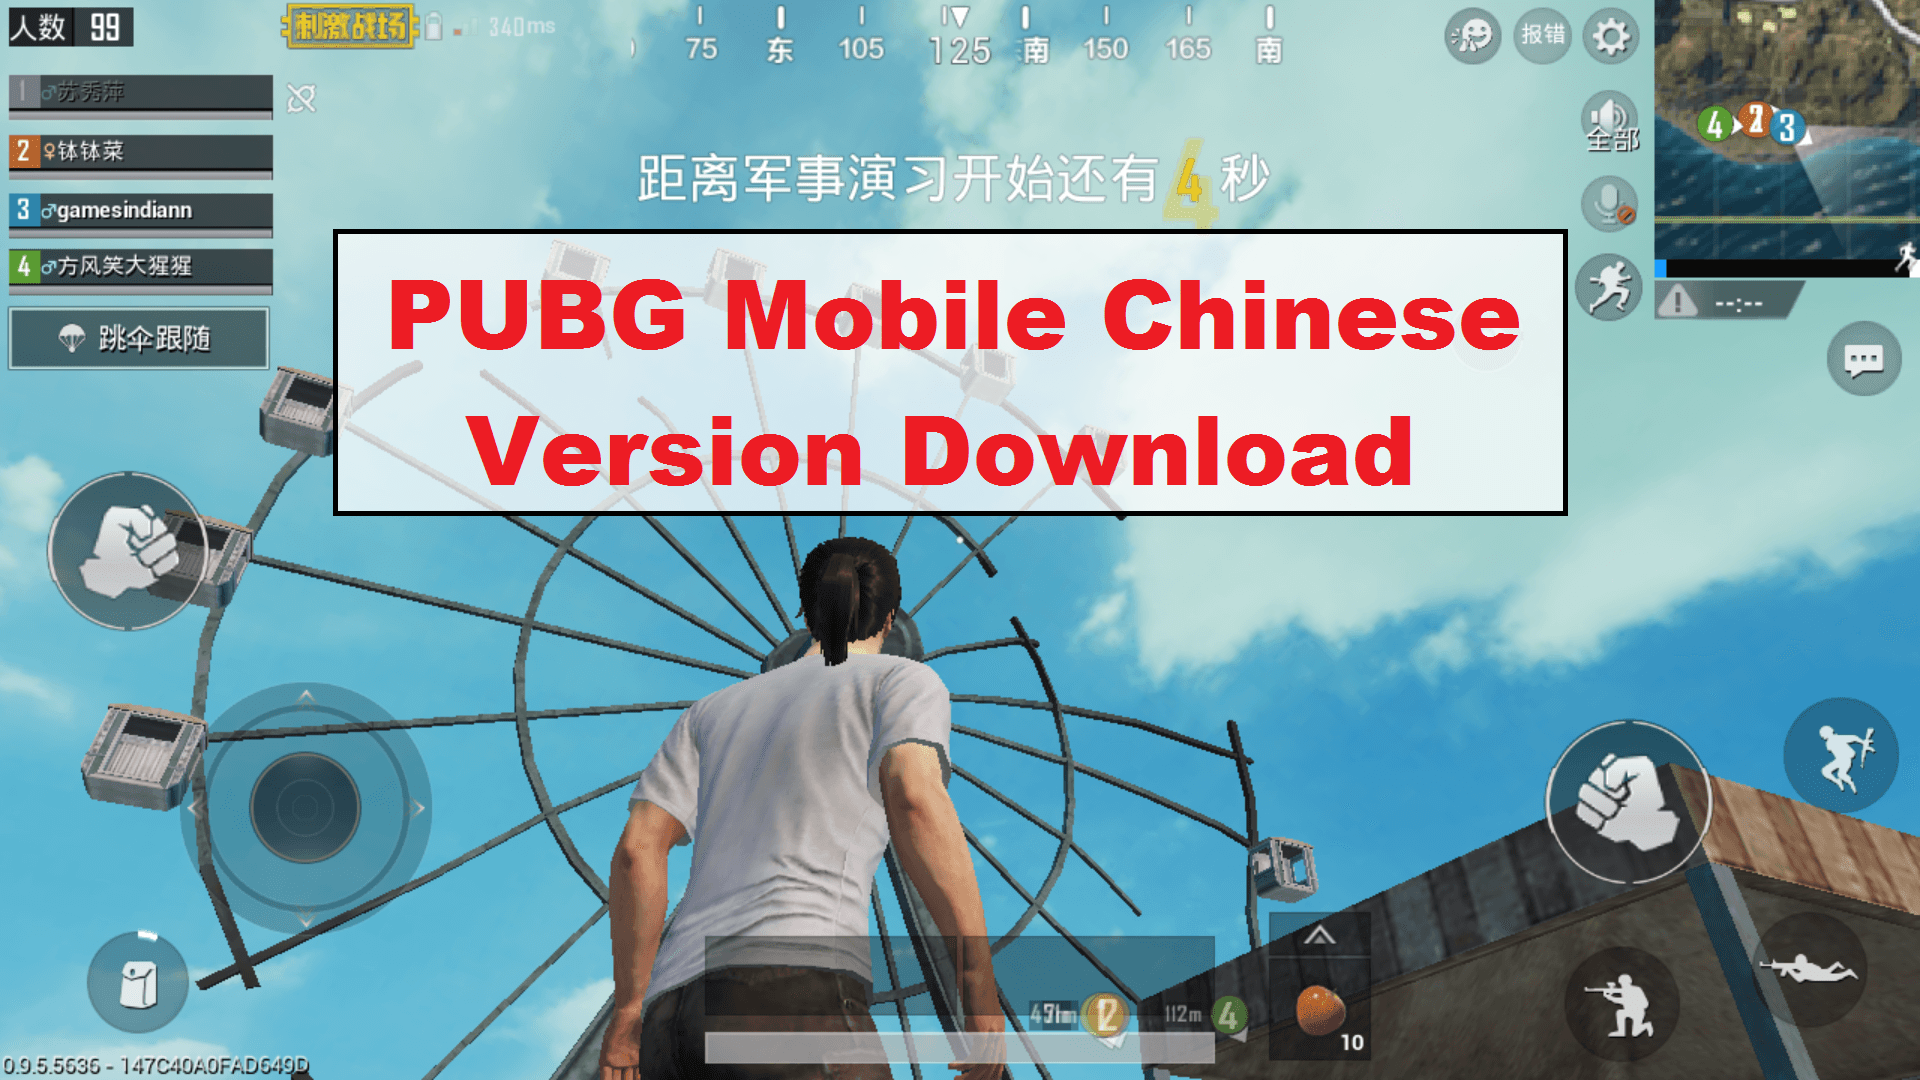 PUBG Mobile Chinese Version